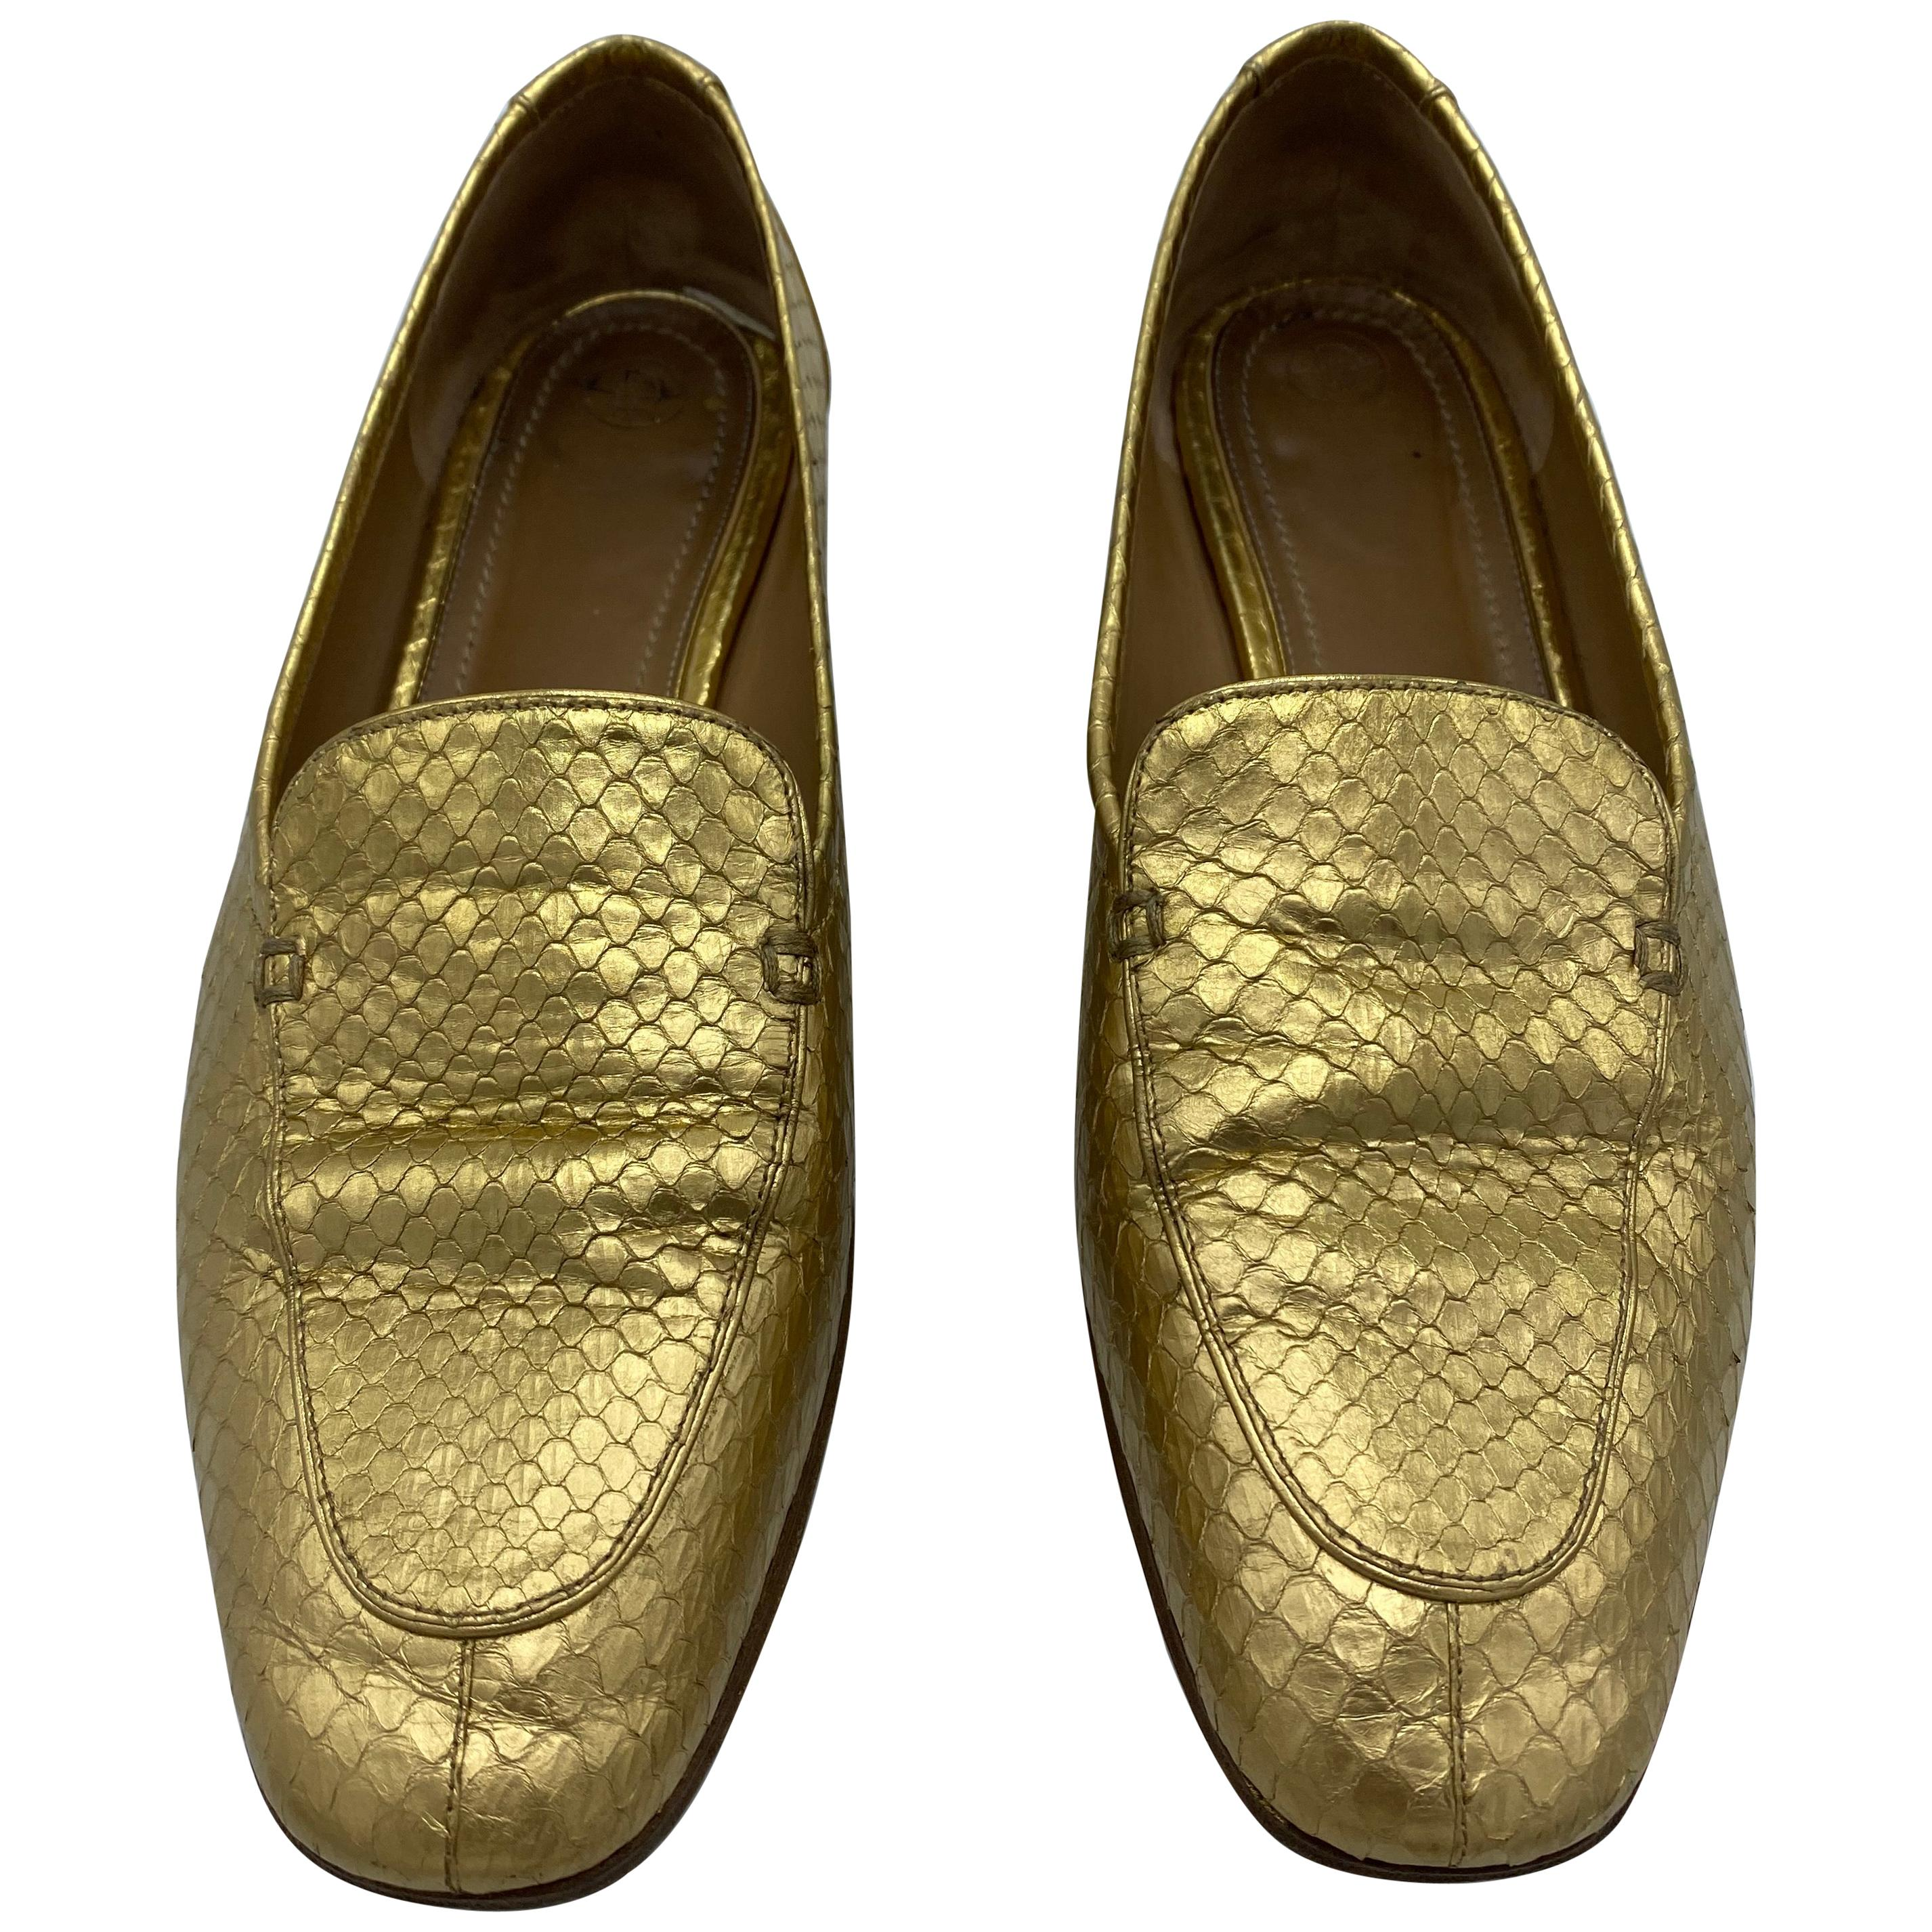 The Row Adam Mocassin Gold Watersnake Flat Shoes Size 39